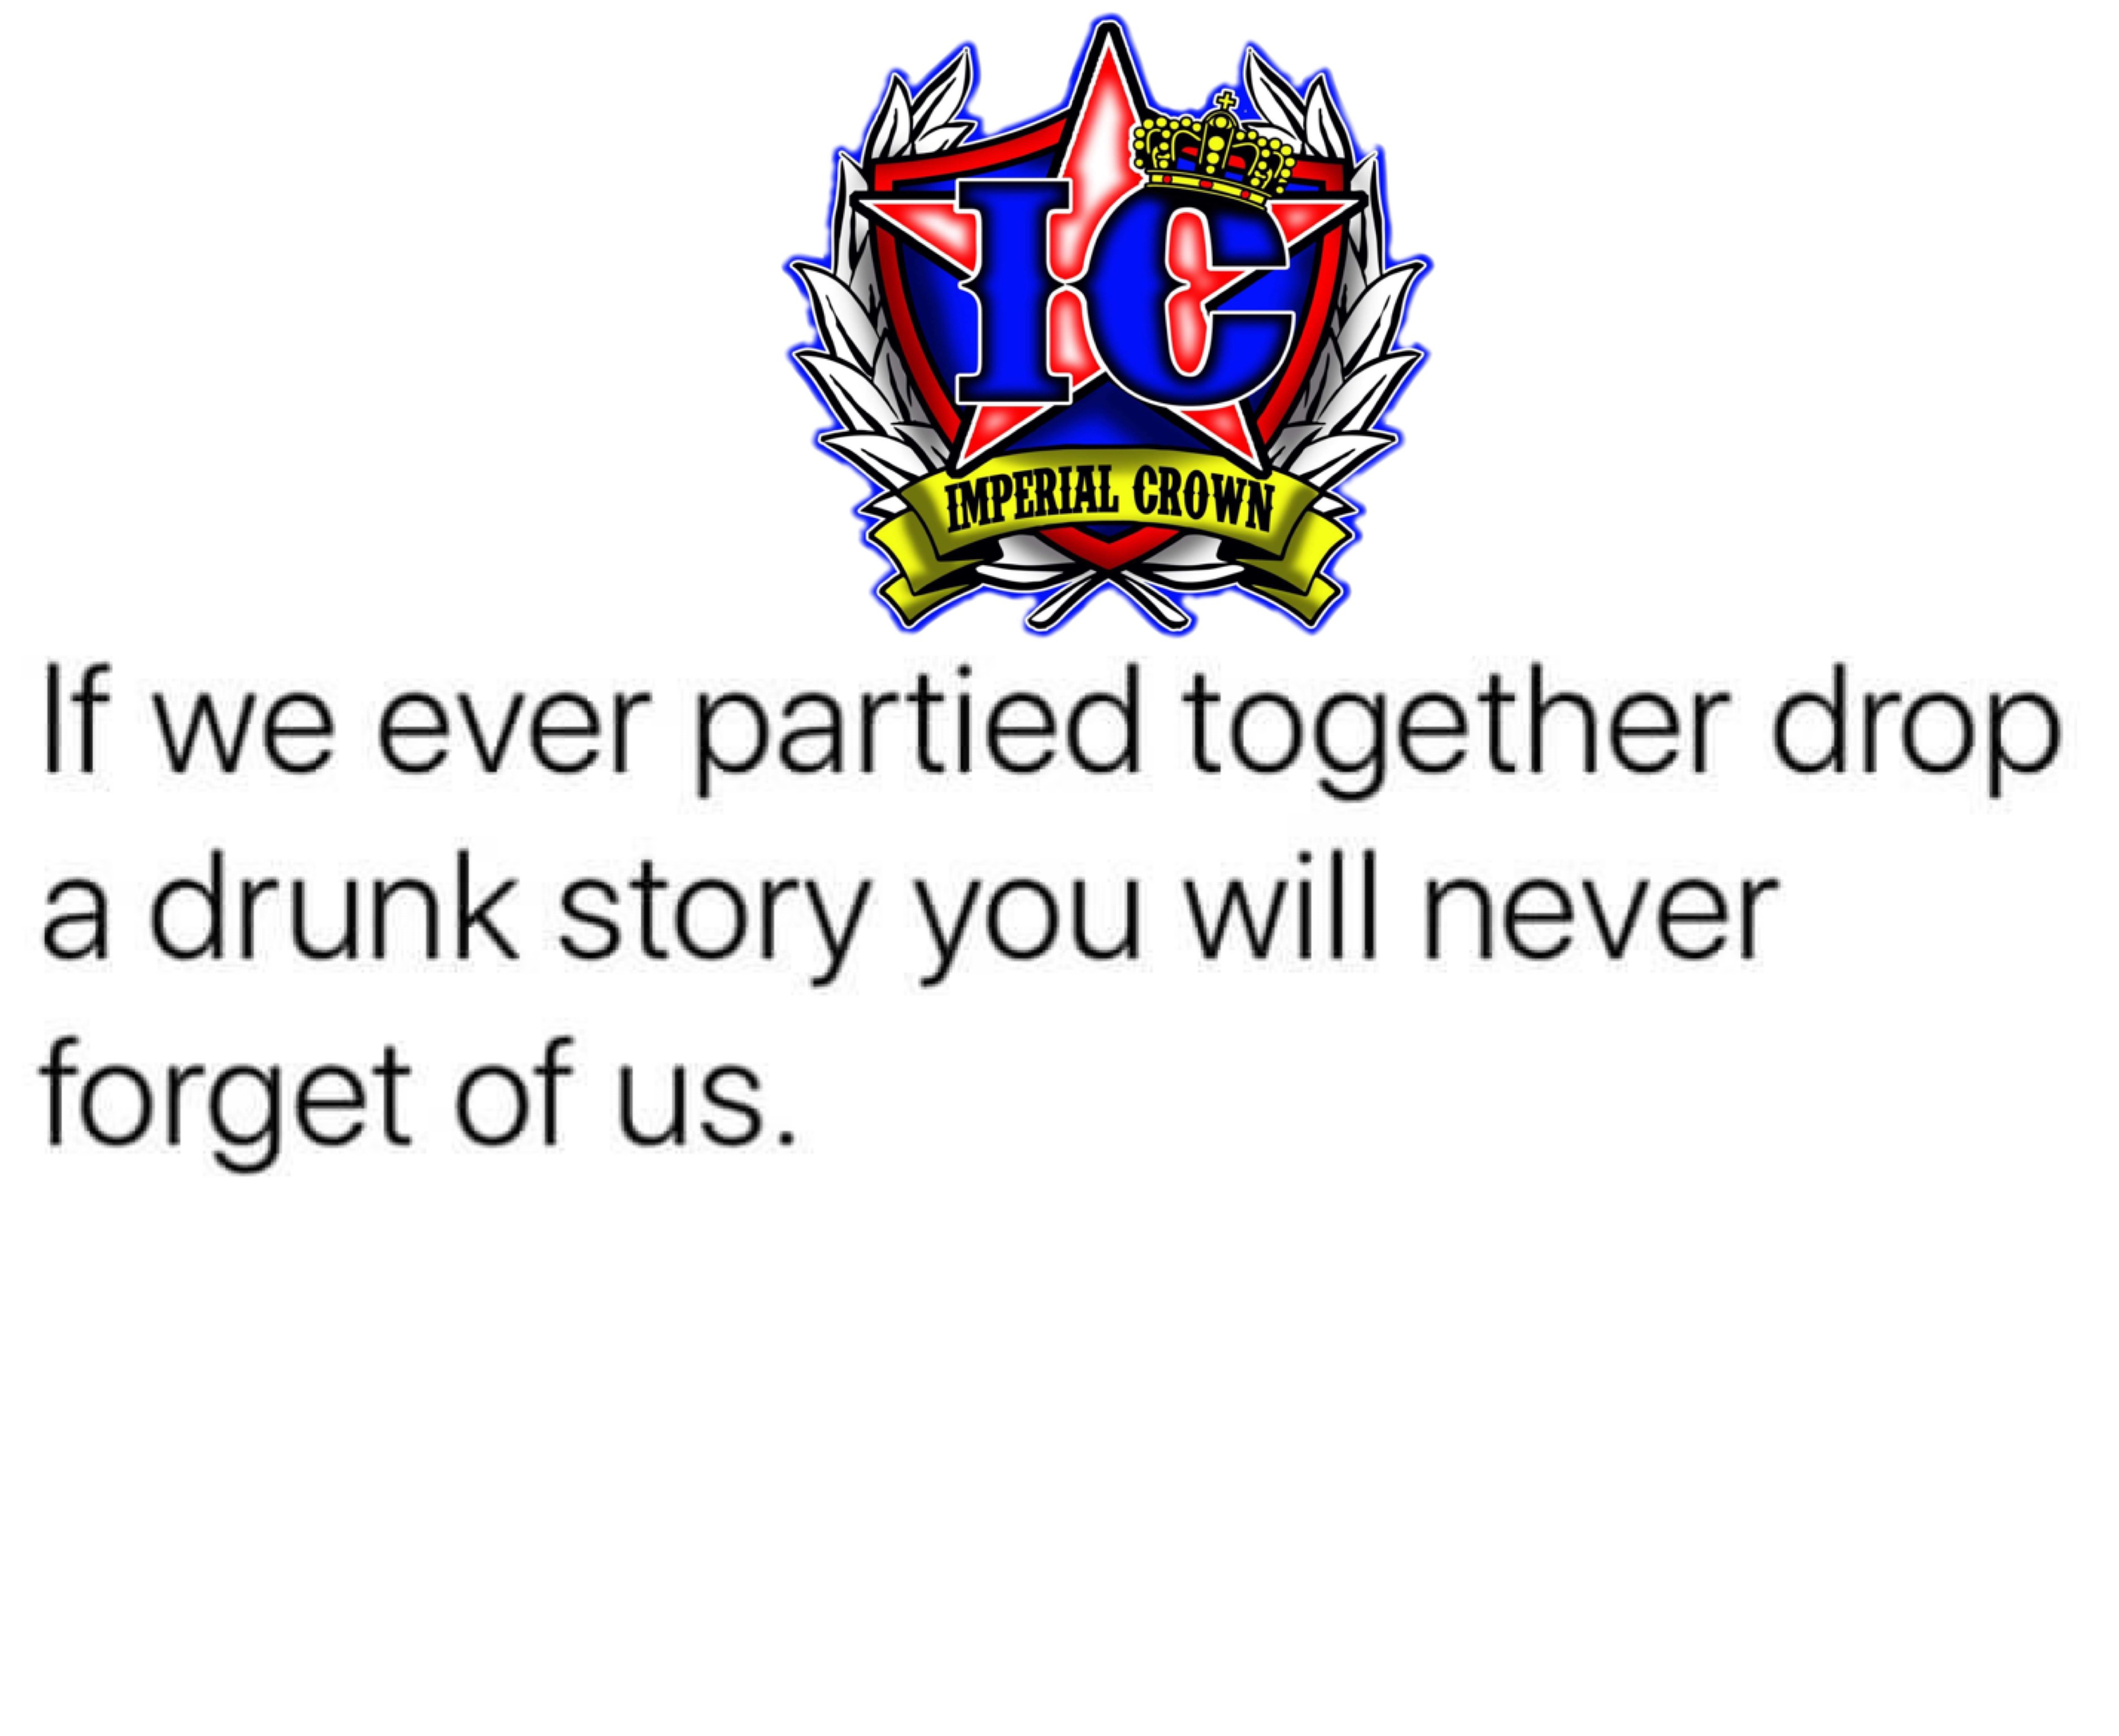 If we ever partied together drop a drunk story you will never forget of us